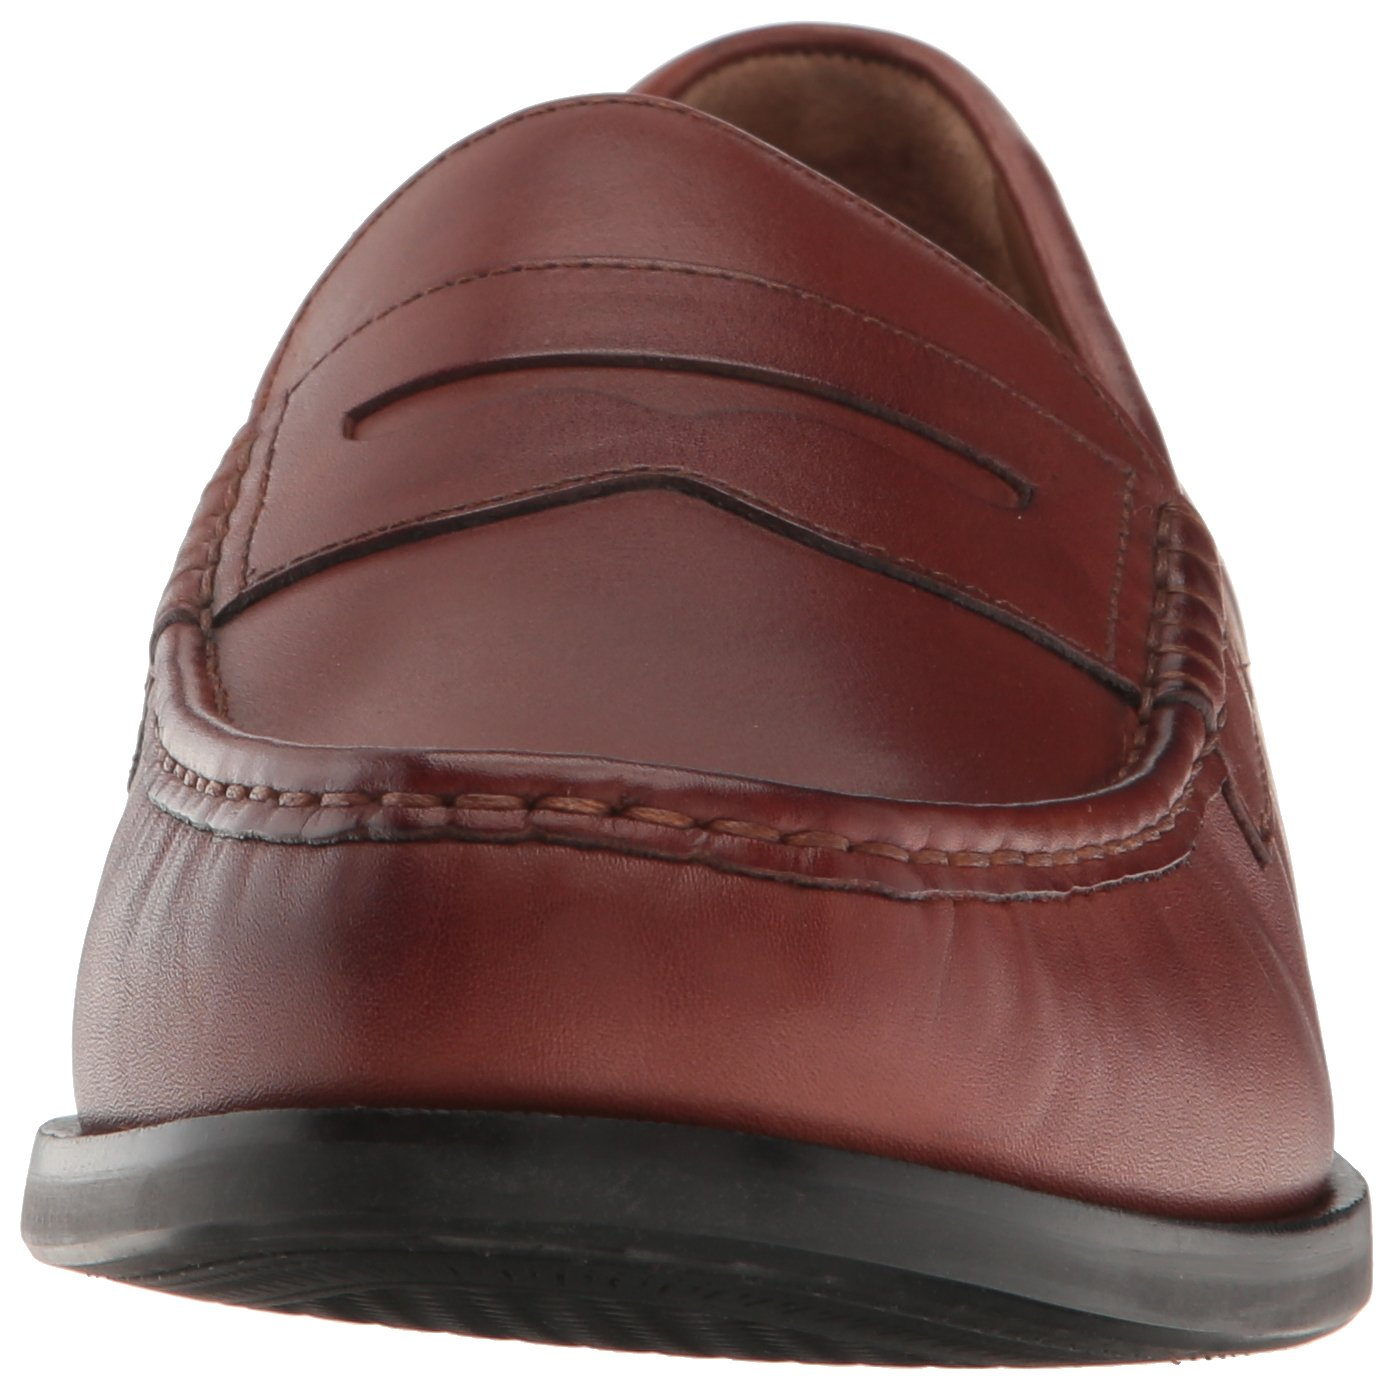 77824ecee64 Cole Haan Men s Pinch Friday Contemporary Loafer